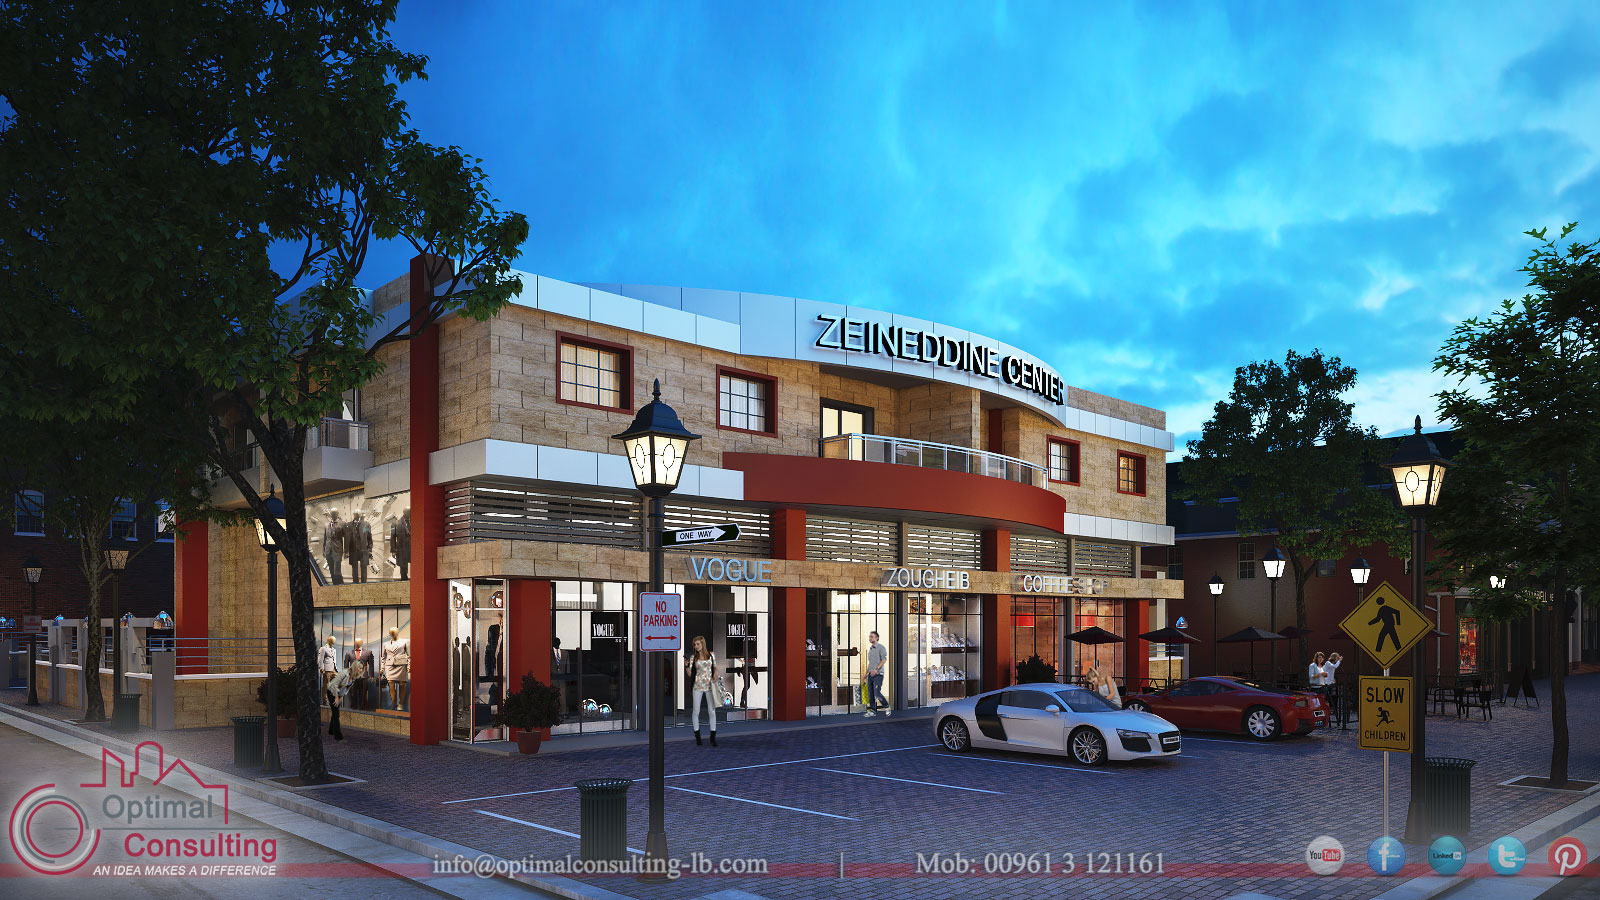 Zeineddine Mall - Architecture & Rendering